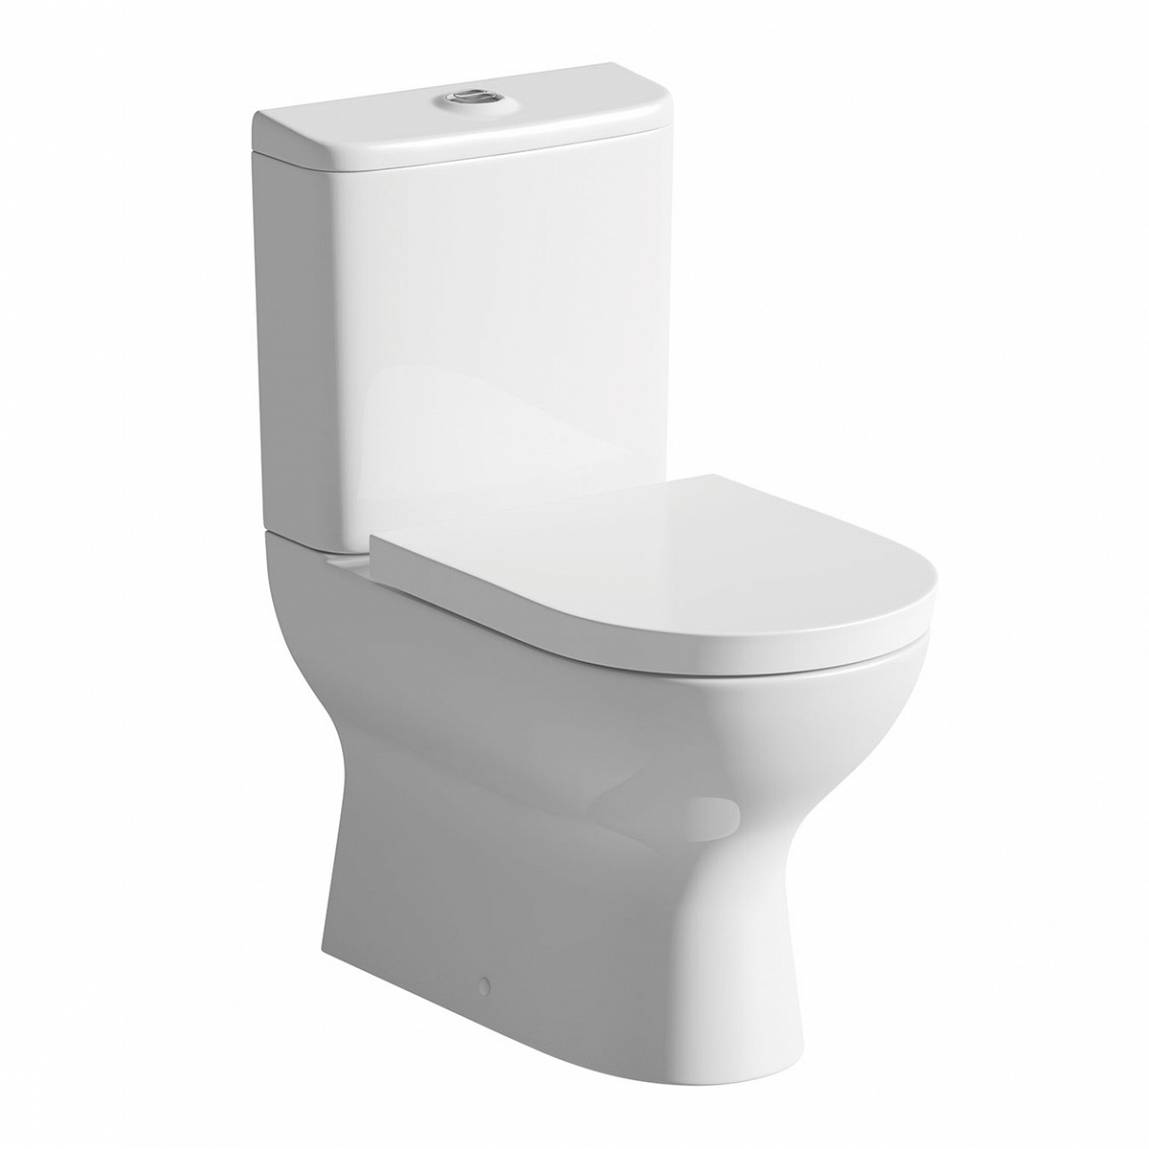 Image of Fairbanks Close Coupled Toilet inc Luxury Soft Close Seat